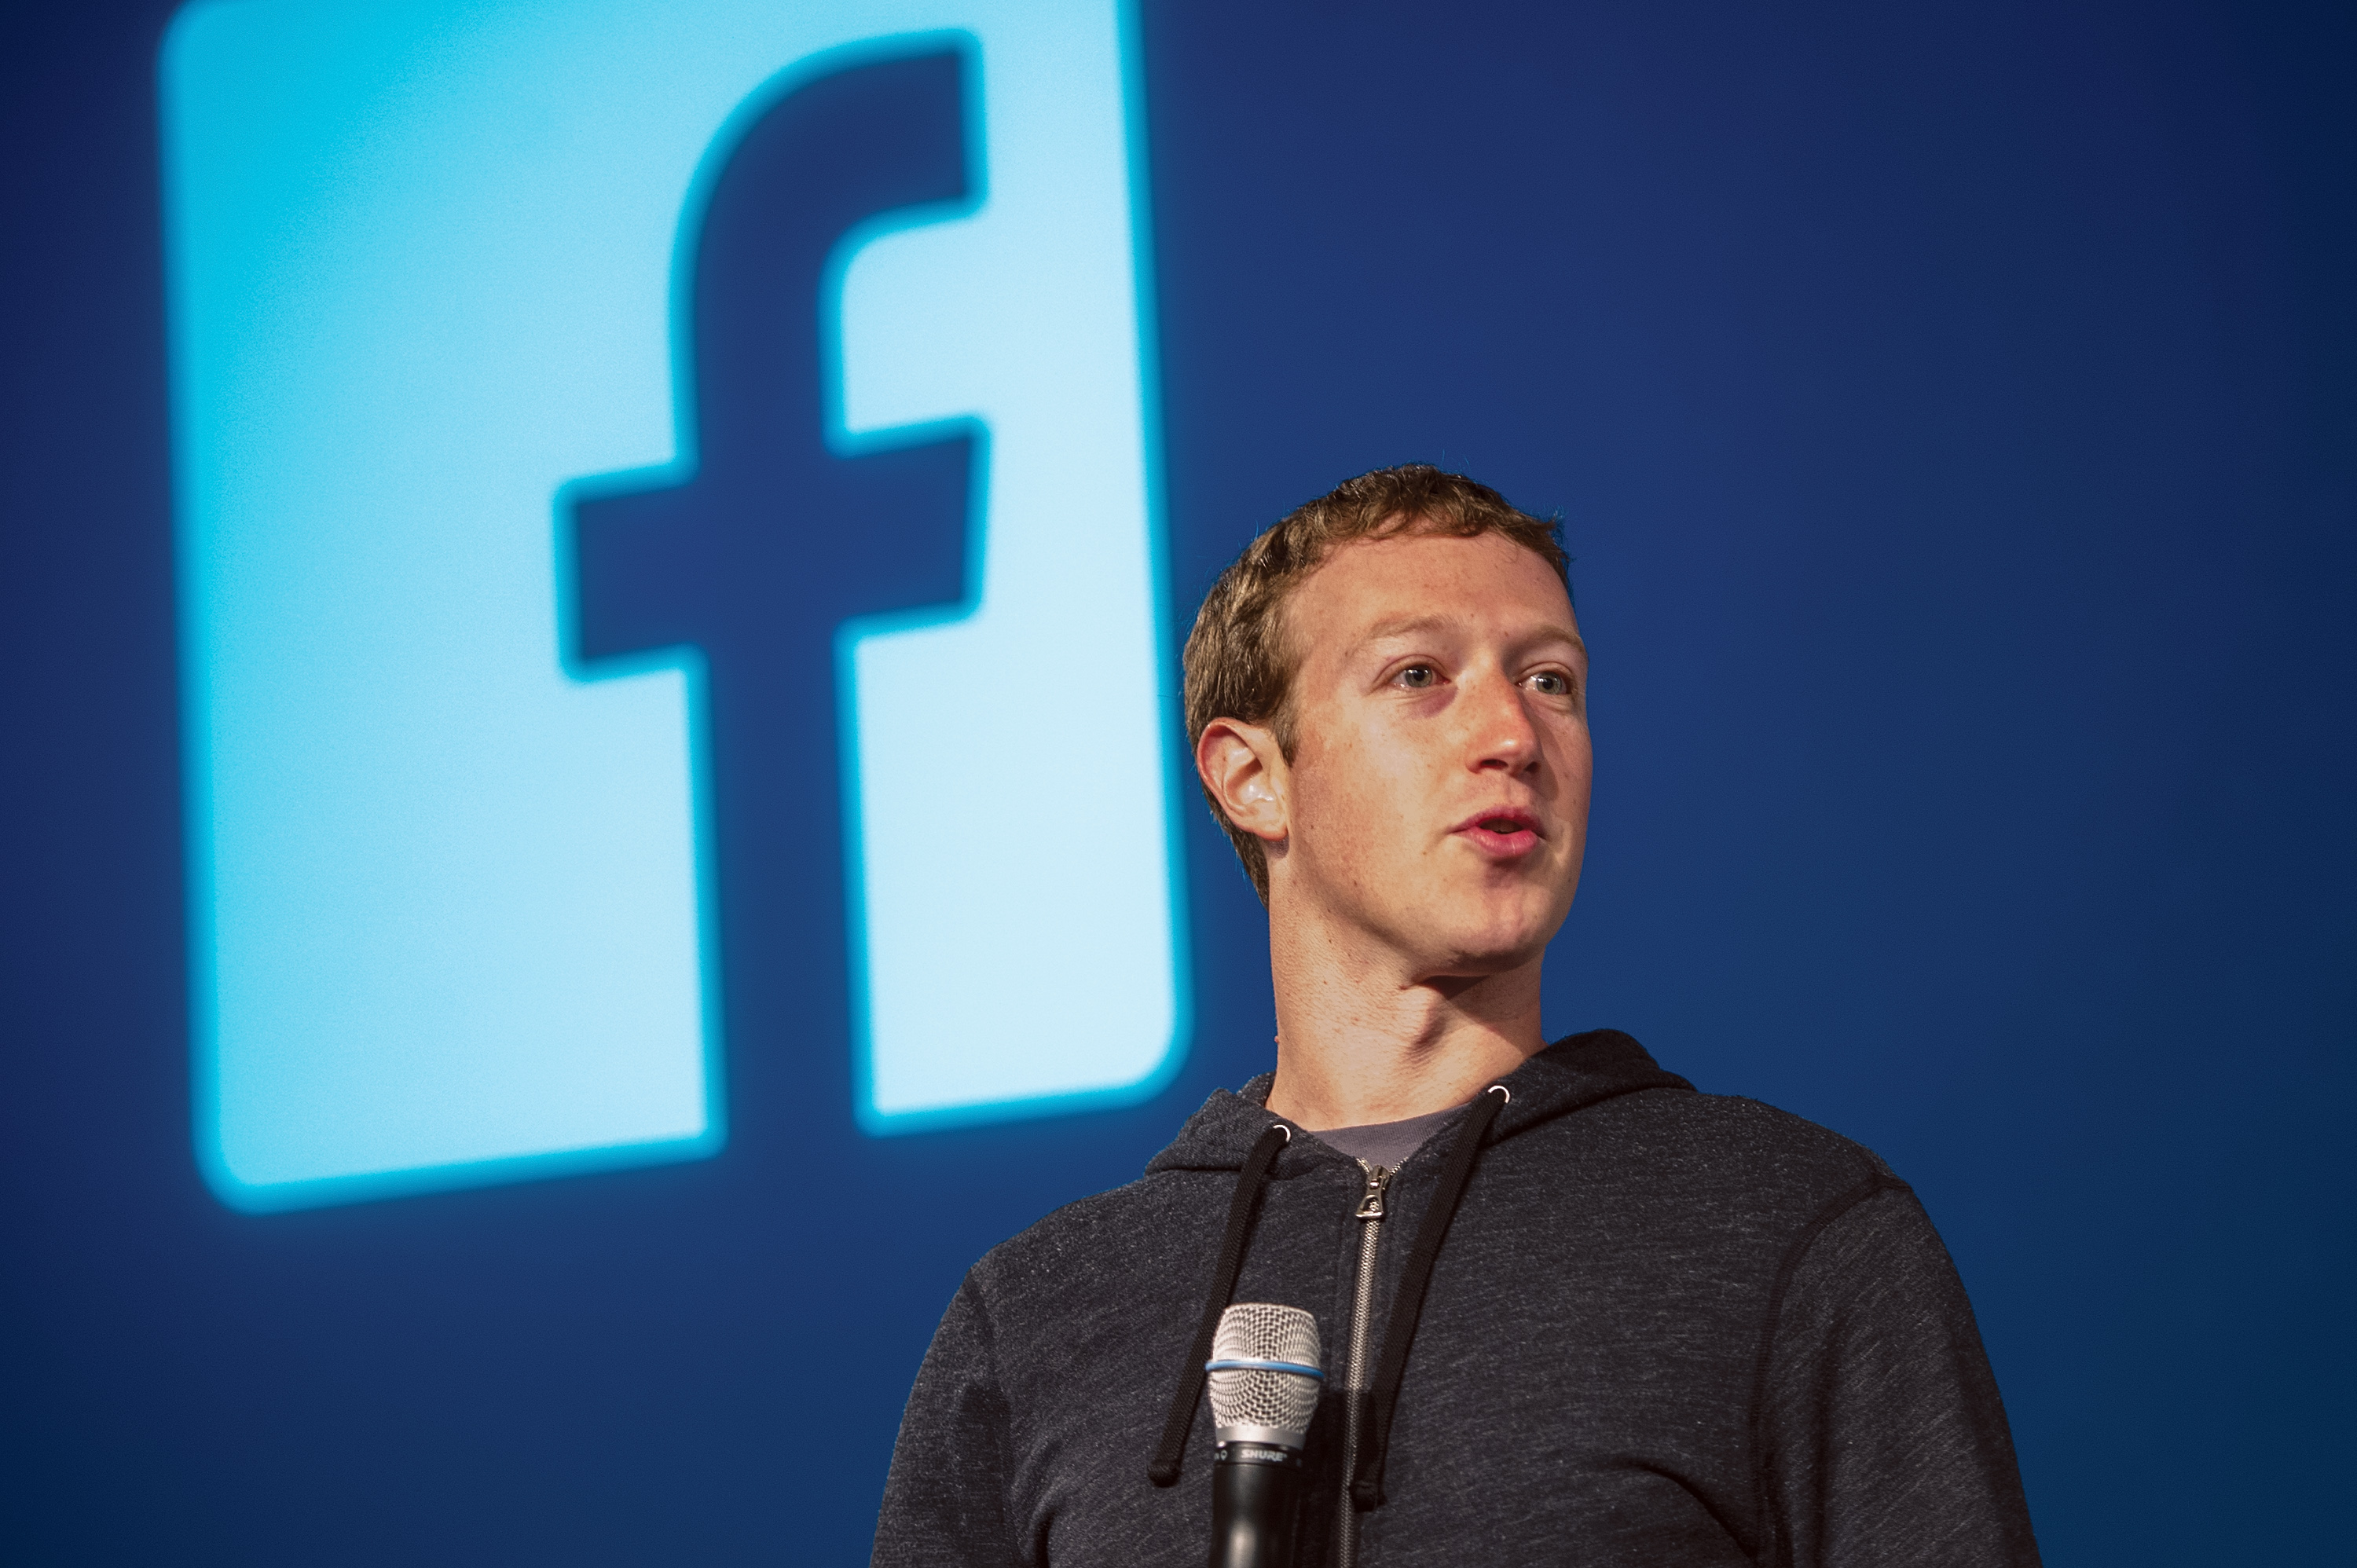 Mark Zuckerberg, chief executive officer and founder of Facebook Inc., speaks during an event at the company's headquarters in Menlo Park, Calif. on March 7, 2013.